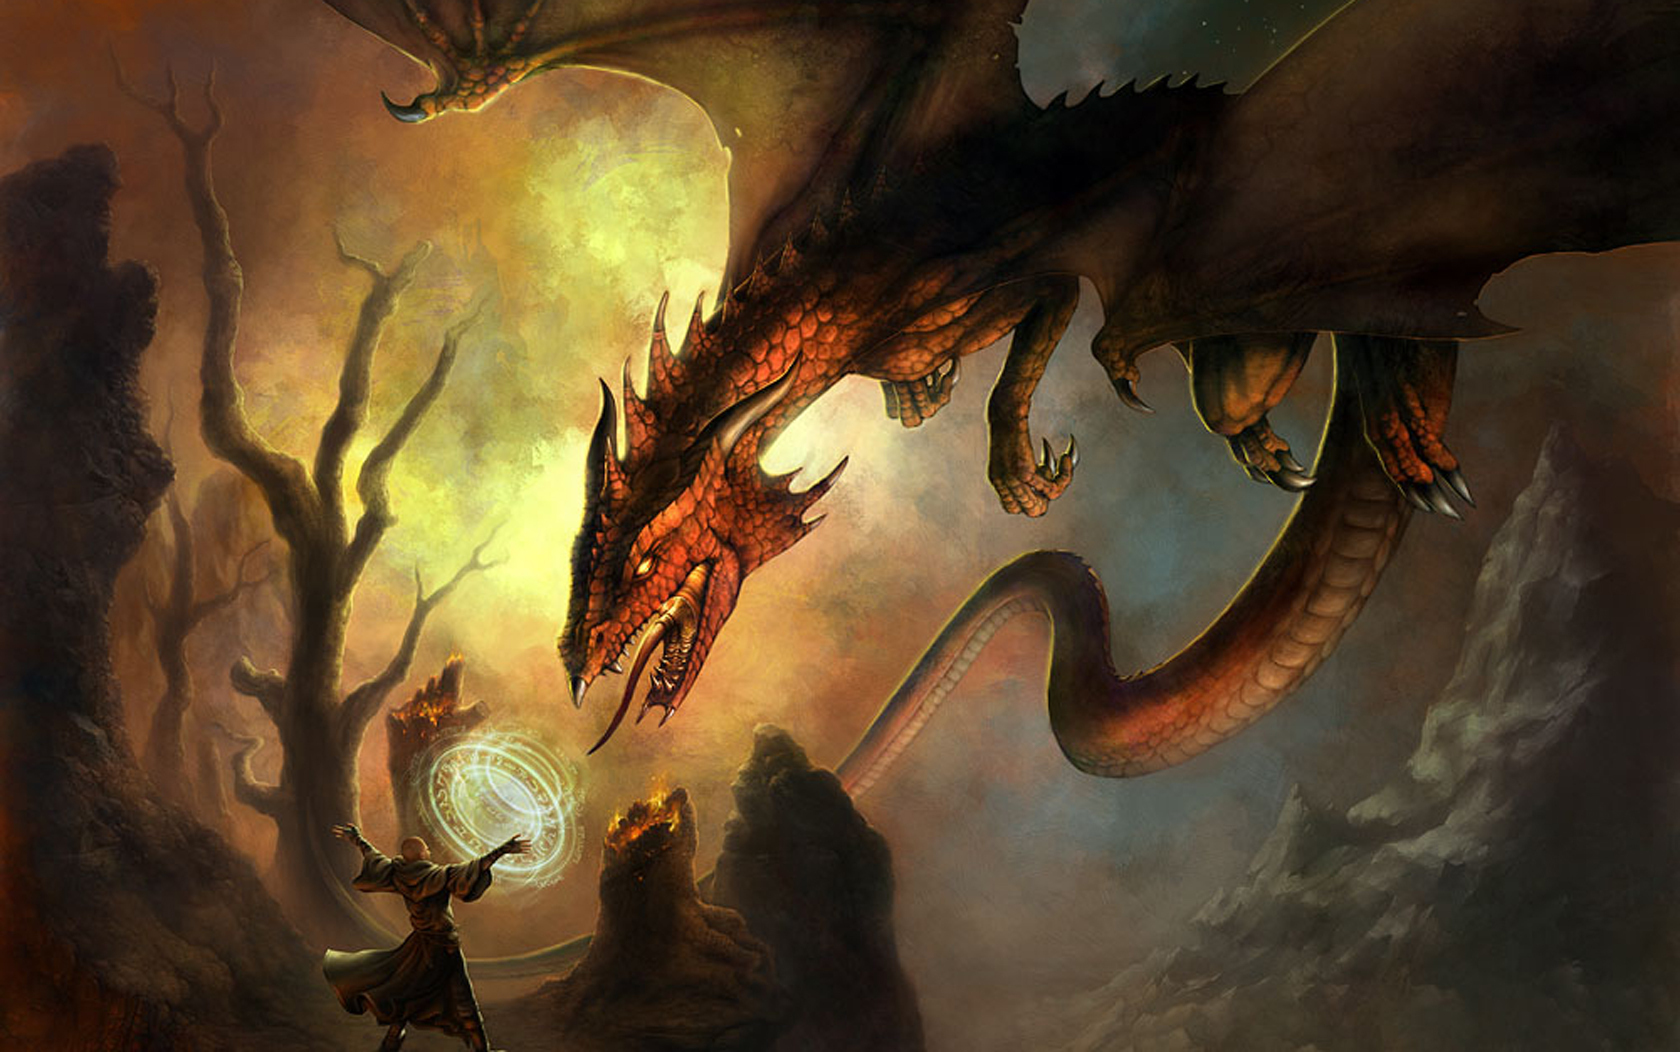 Warlocks Dragons: Dragons Wallpapers, Pictures, Images